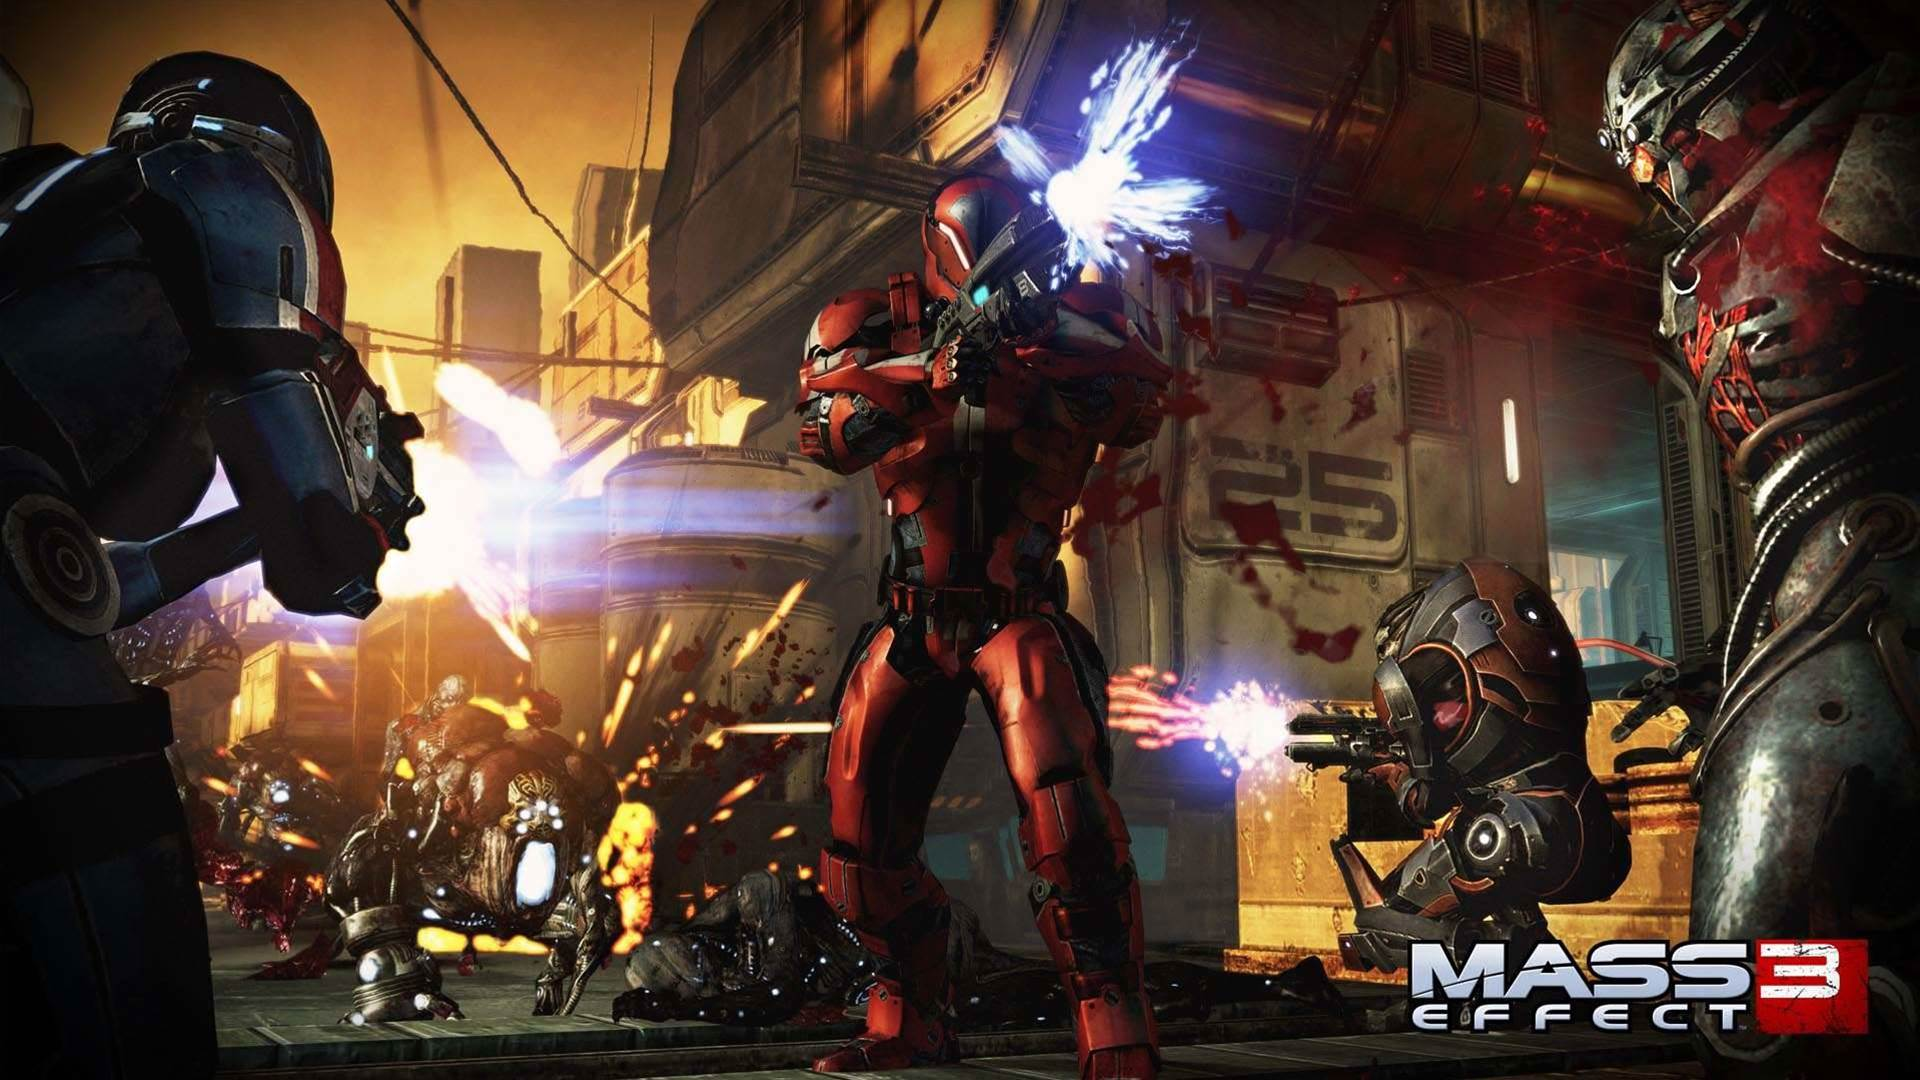 Tell us: how do you rate the Mass Effect 3 demo?